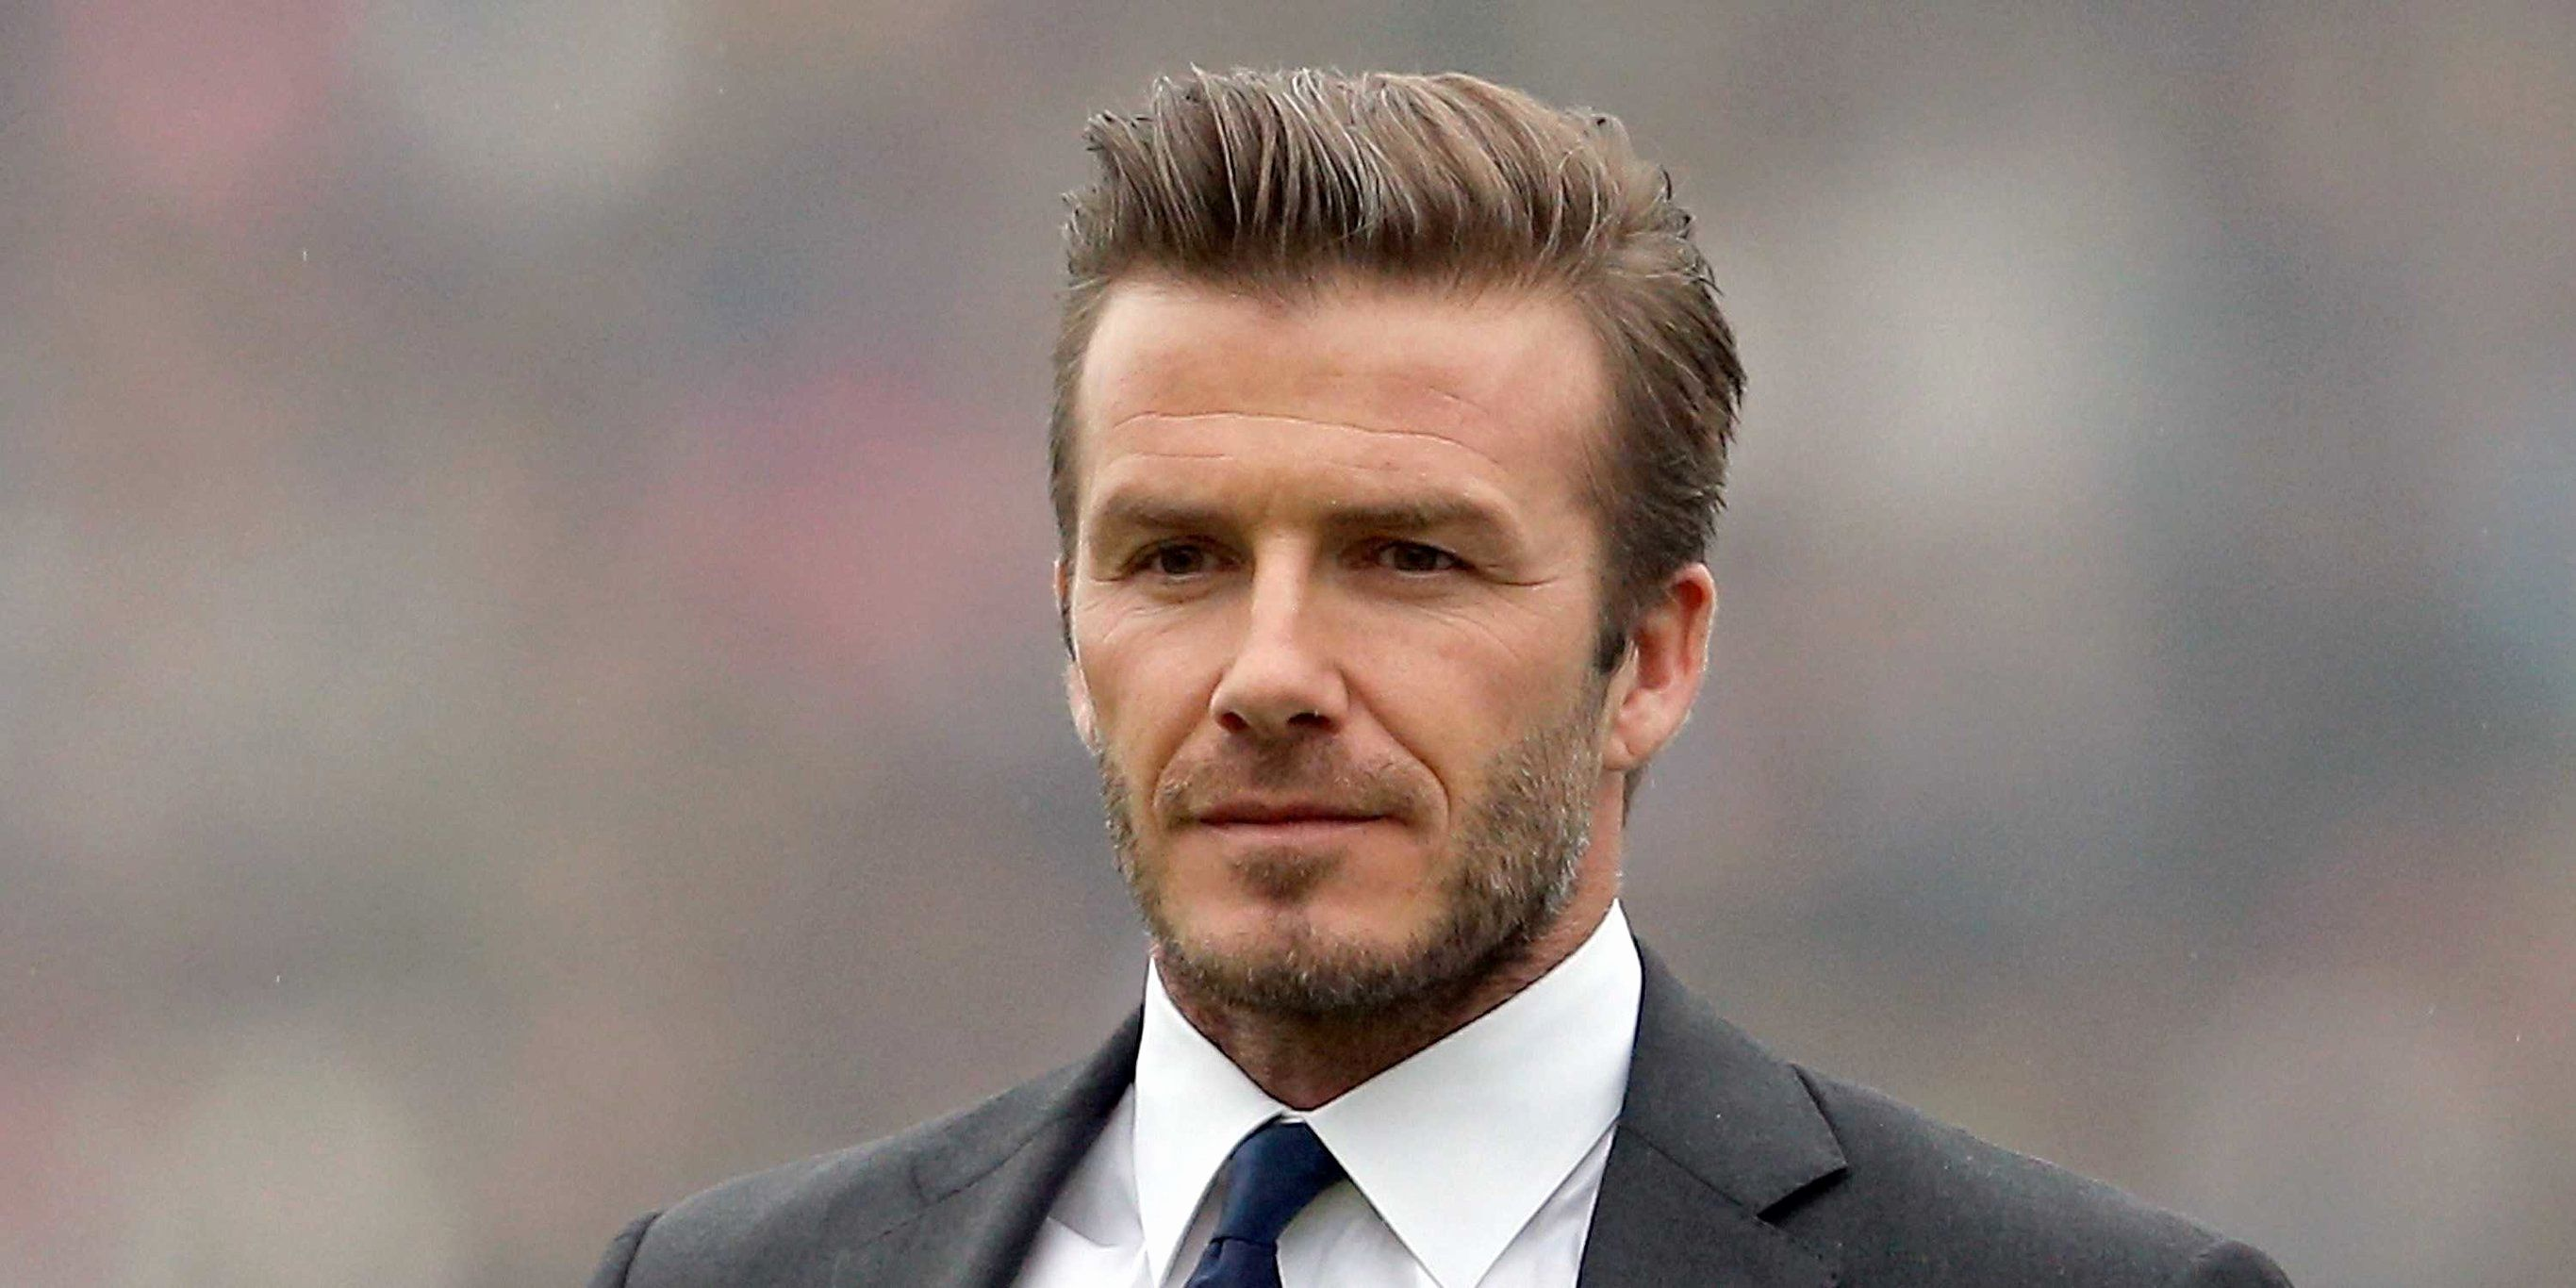 32 Hairstyles For Men With Thin Hair And Big Forehead Beehost Beckham Hair David Beckham Hairstyle Mens Hairstyles Pompadour